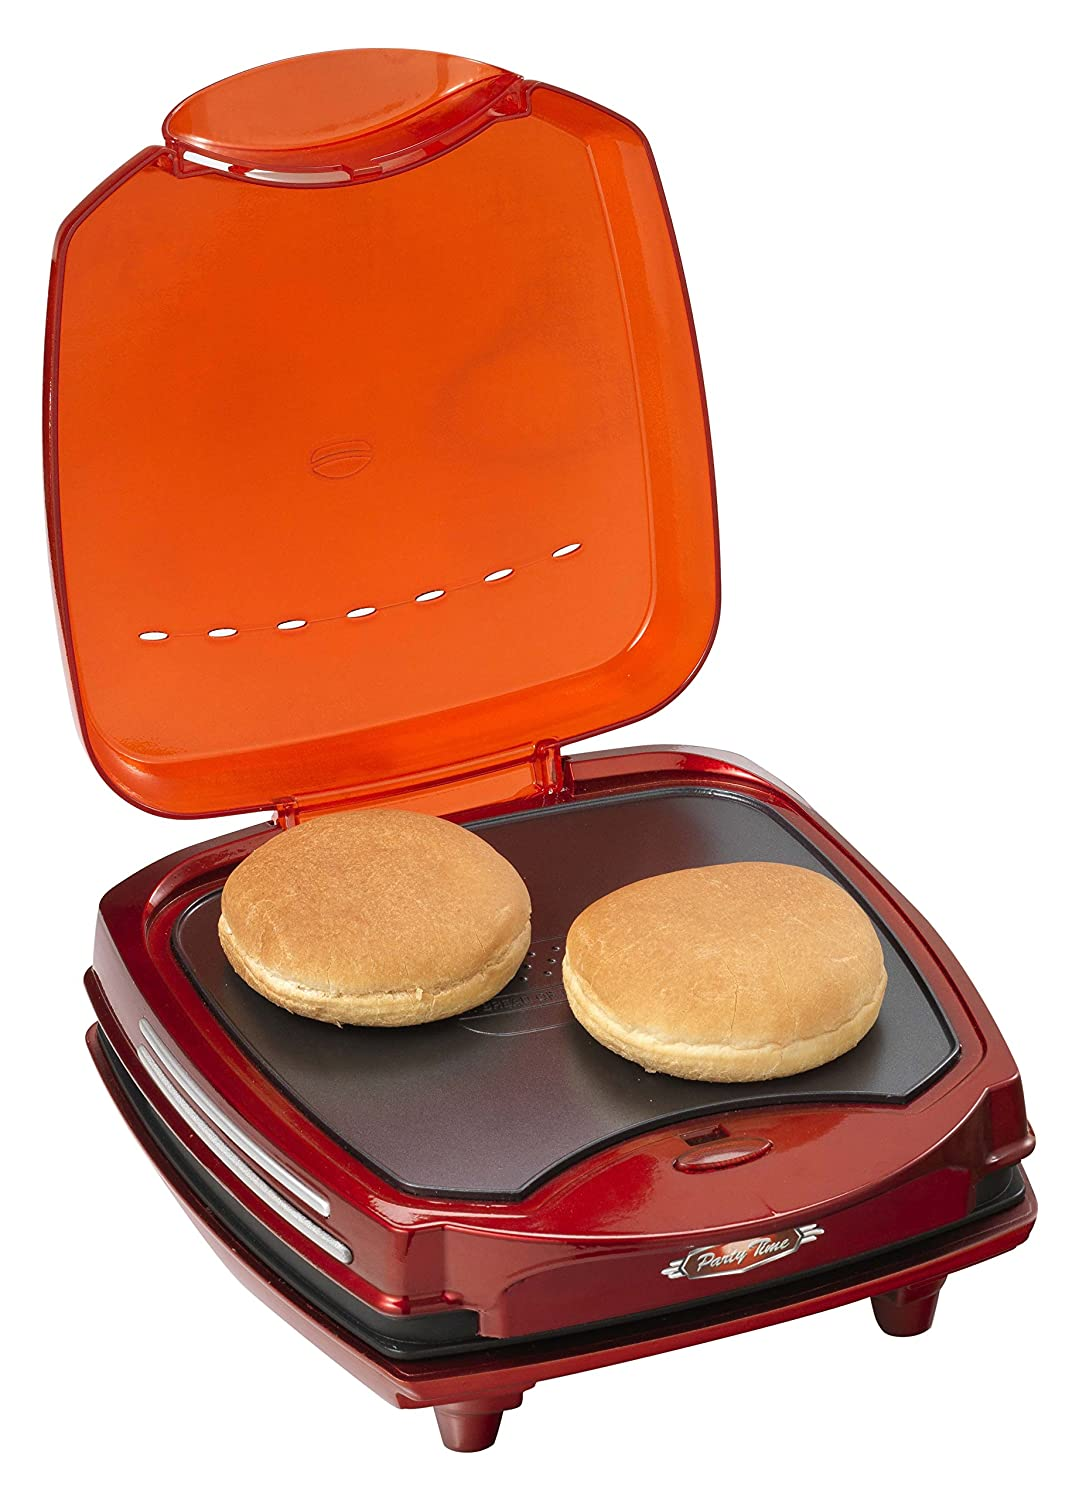 Ariete 185 Maquina DE Hamburguesas Party Time, 1200 W, Grate + Griddle, Negro, Rojo: Amazon.es: Hogar